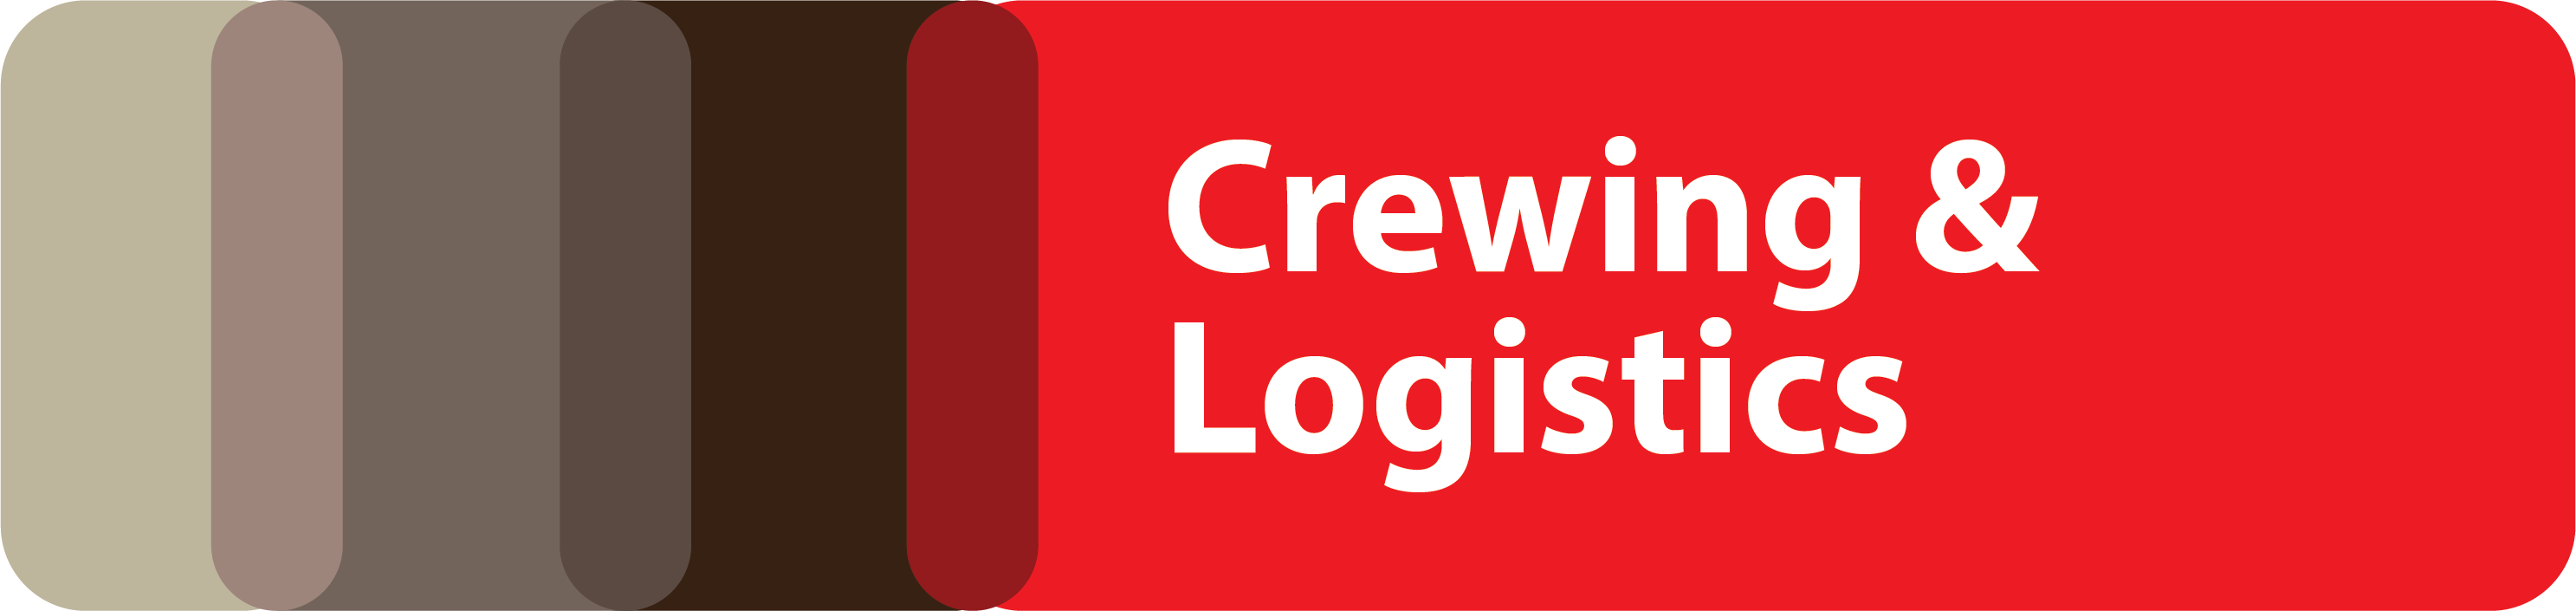 Crewing & Logistics